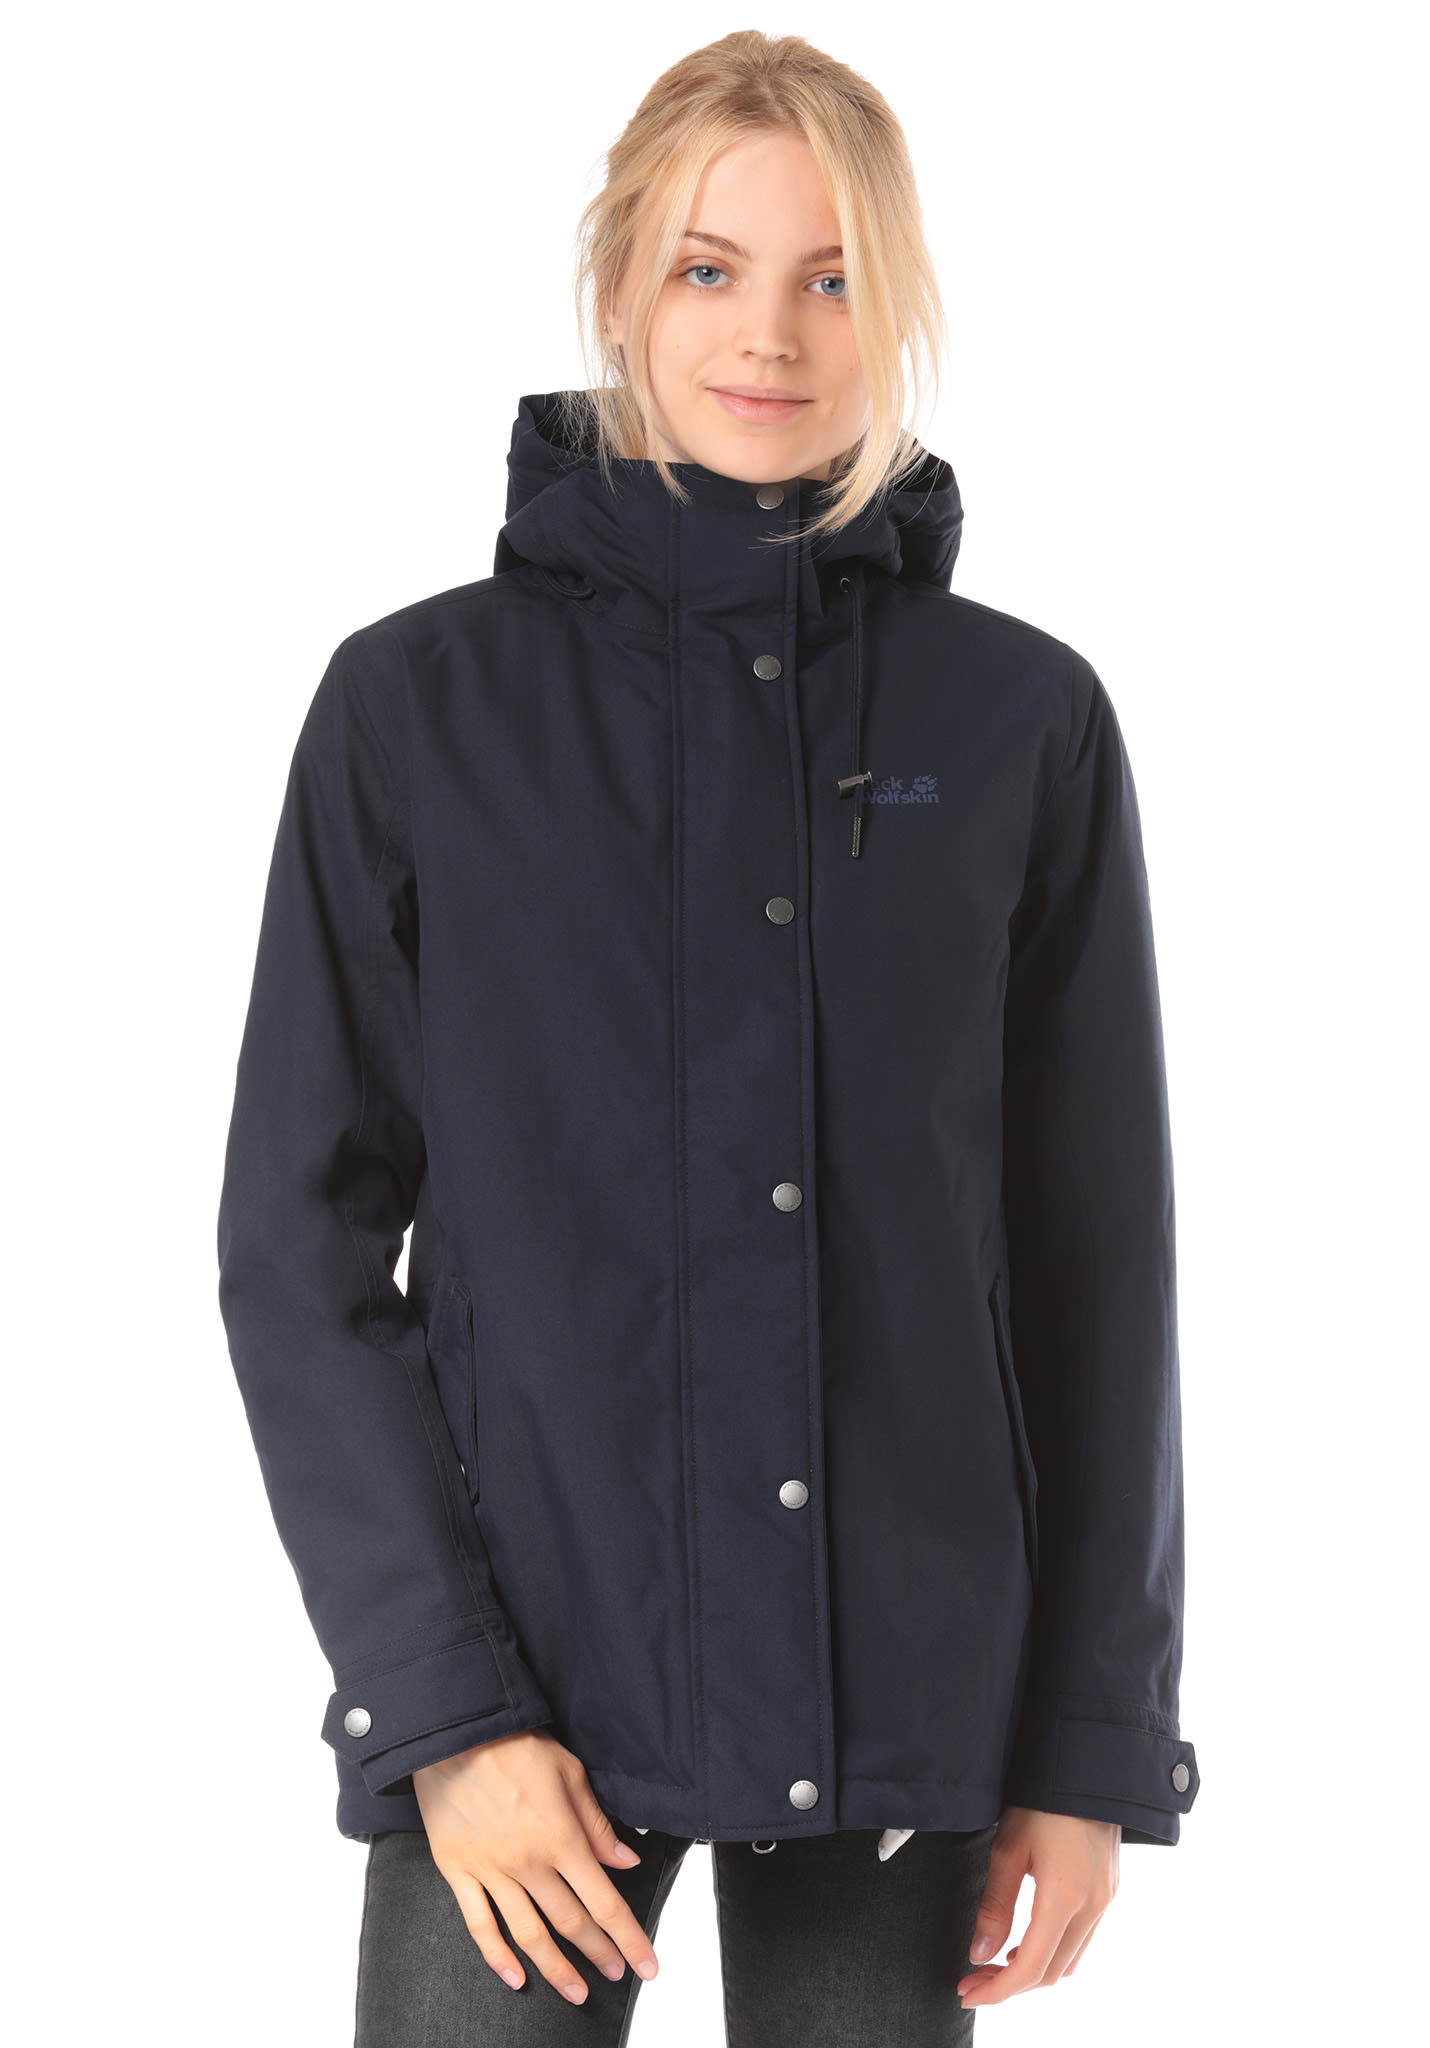 5bbbf70ef108 Jack Wolfskin Mora - Outdoorjacke für Damen - Blau - Planet Sports